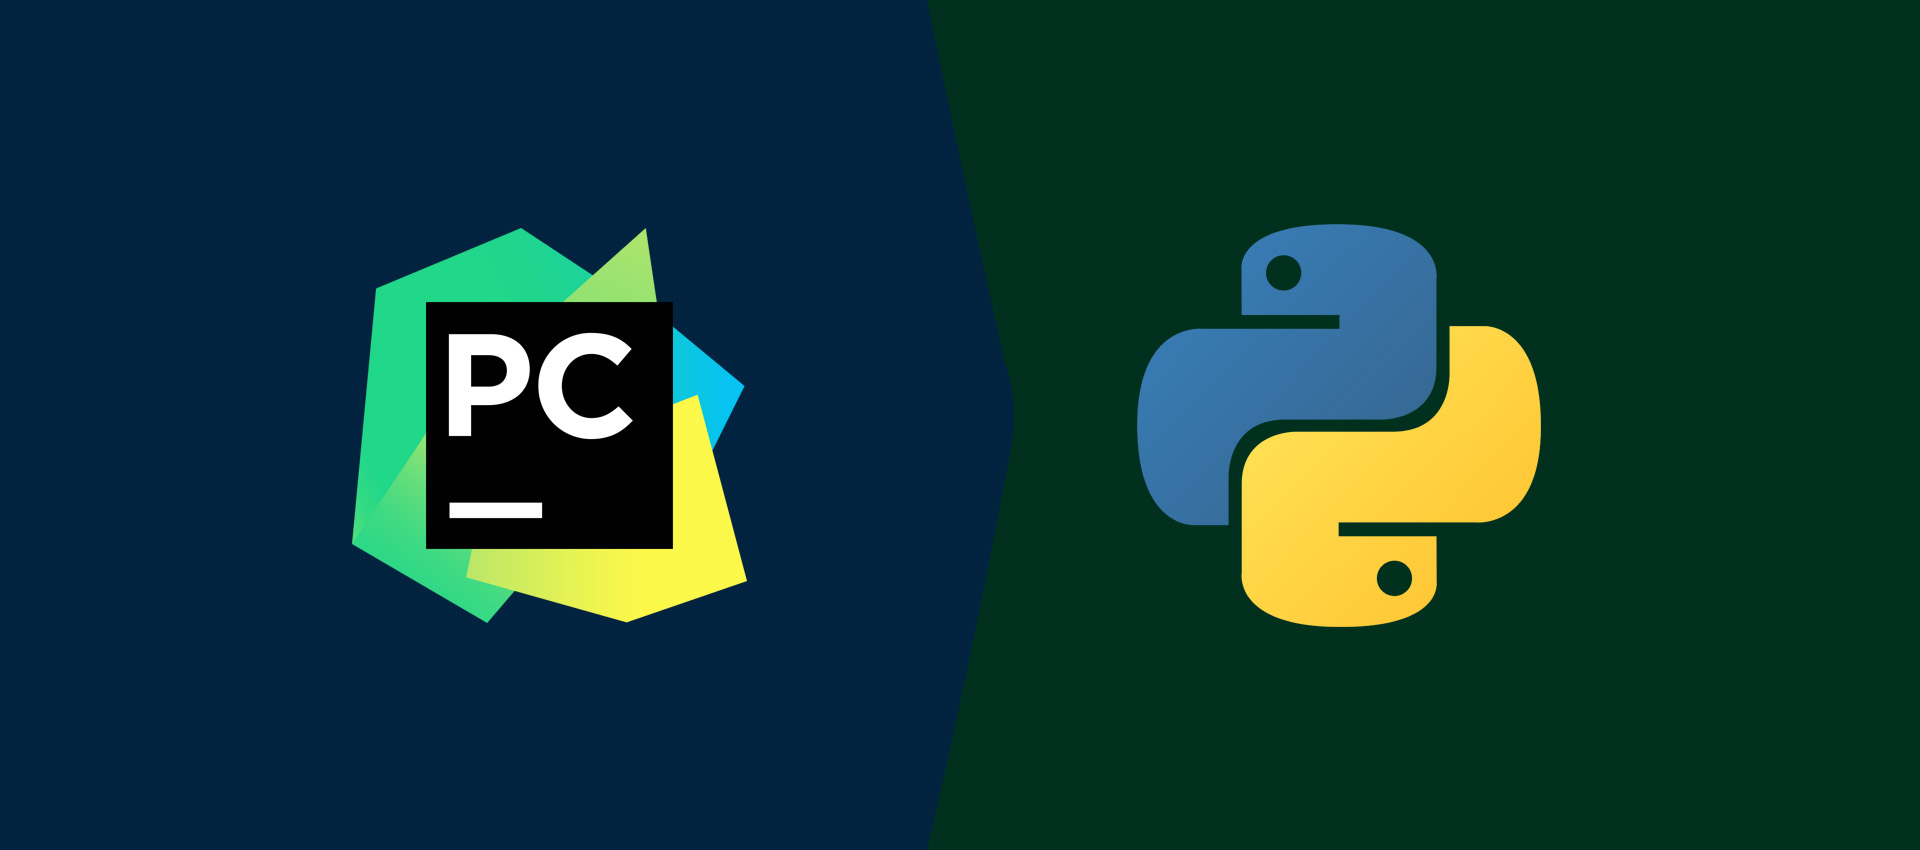 How To Install PyCharm For Python On Windows